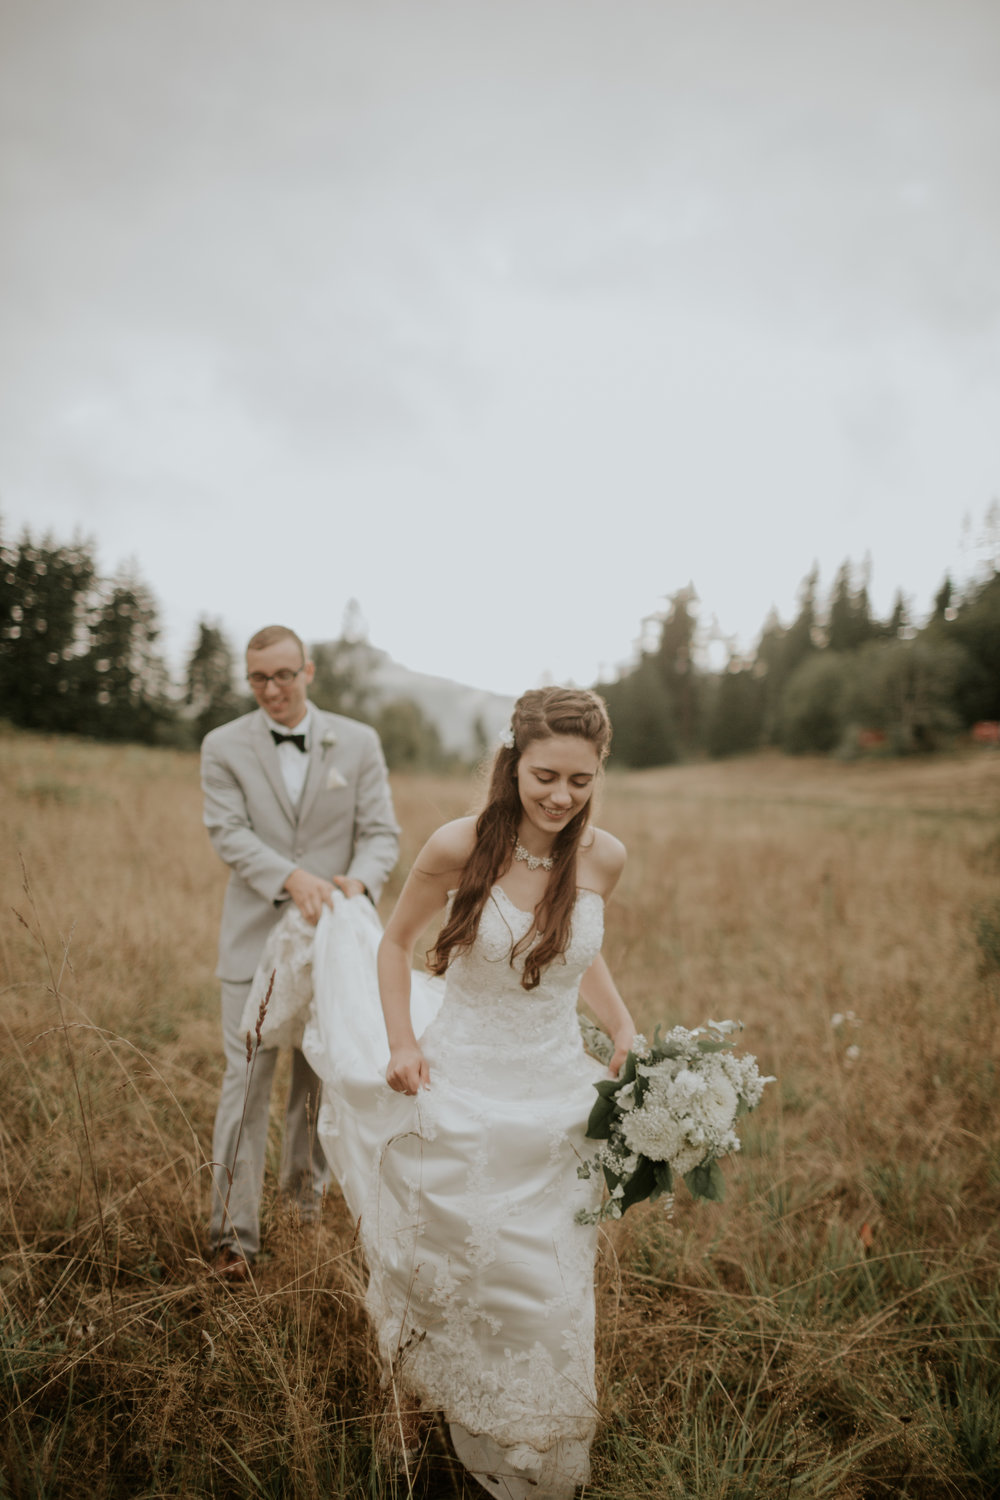 Port-Angeles-elopement-wedding-pnw-olympic-peninsula-photographer-portrait-kayladawnphoto-kayla-dawn-photography-olympic-national-park-189.jpg